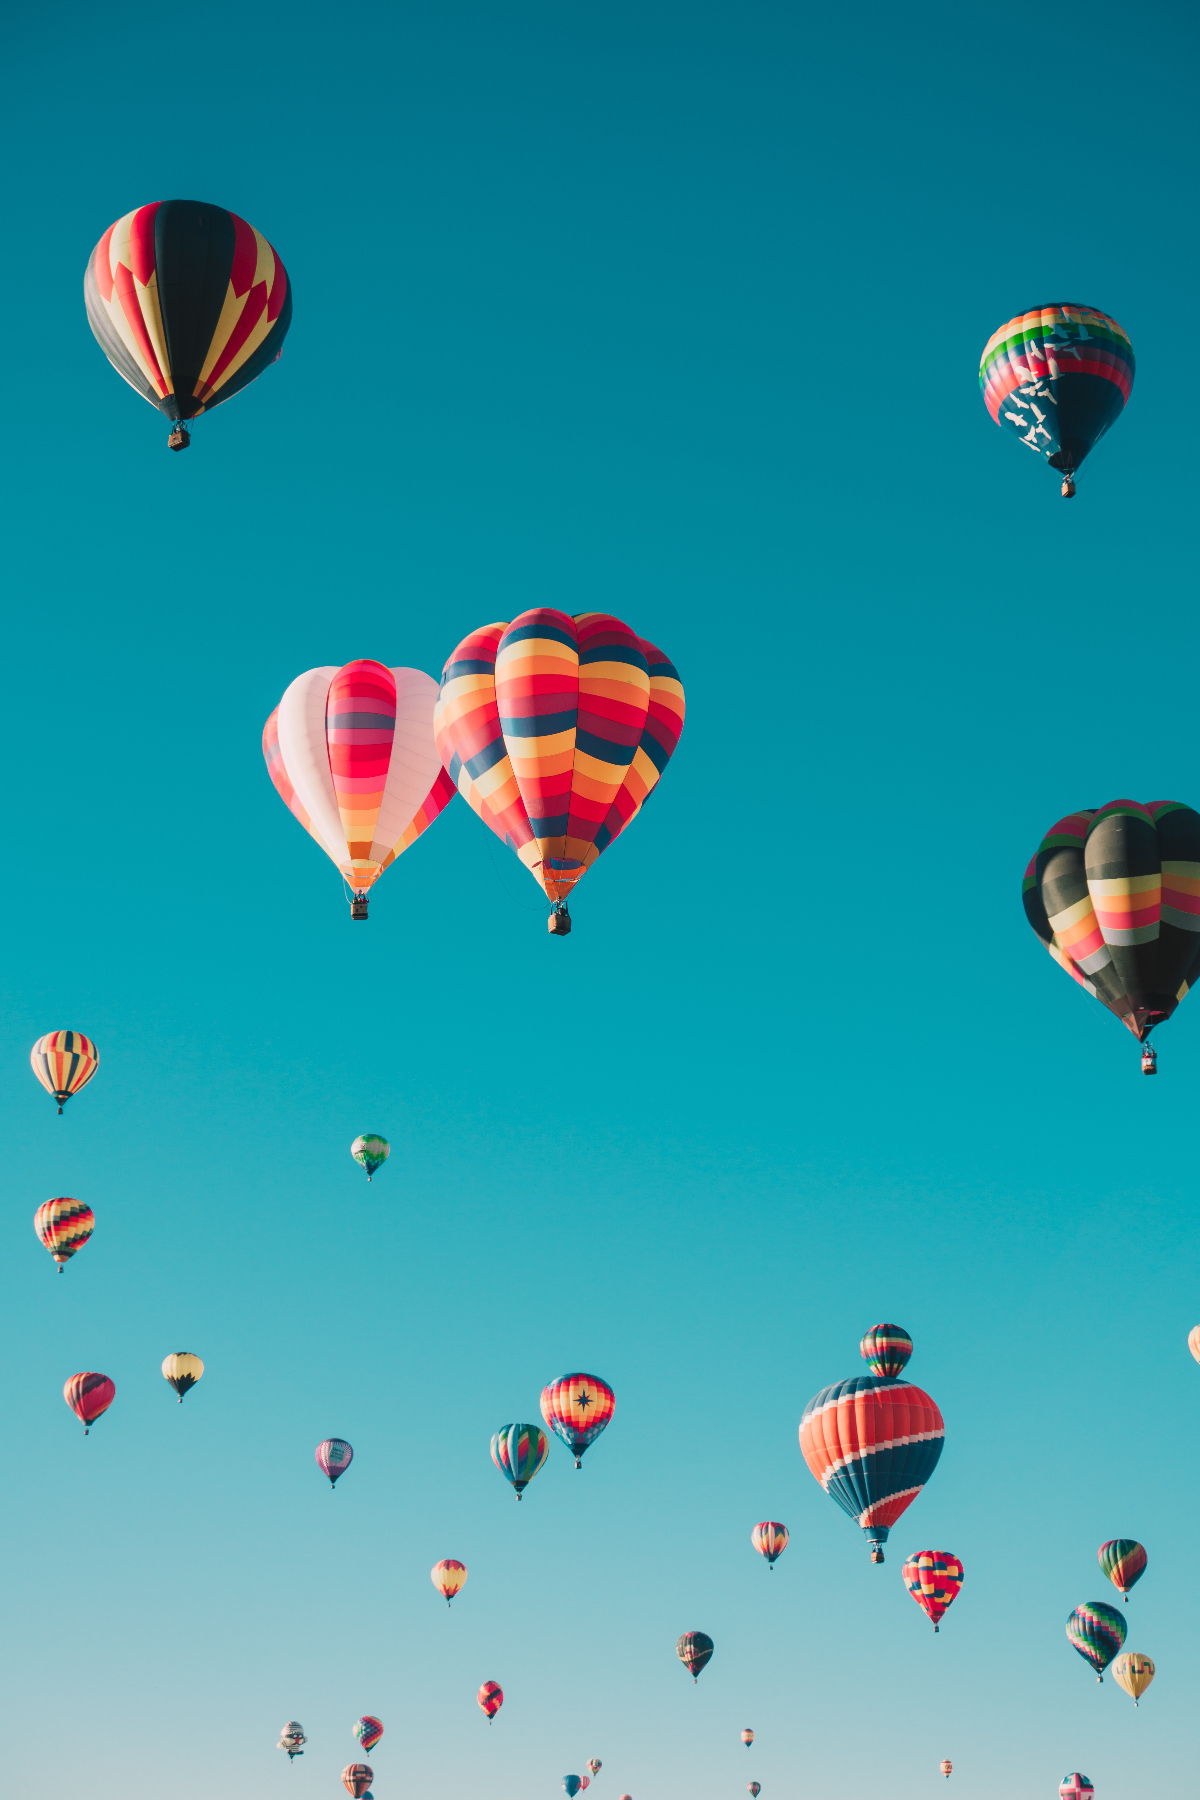 Sarasota Hot Air Balloon Festival and Carnival 2018